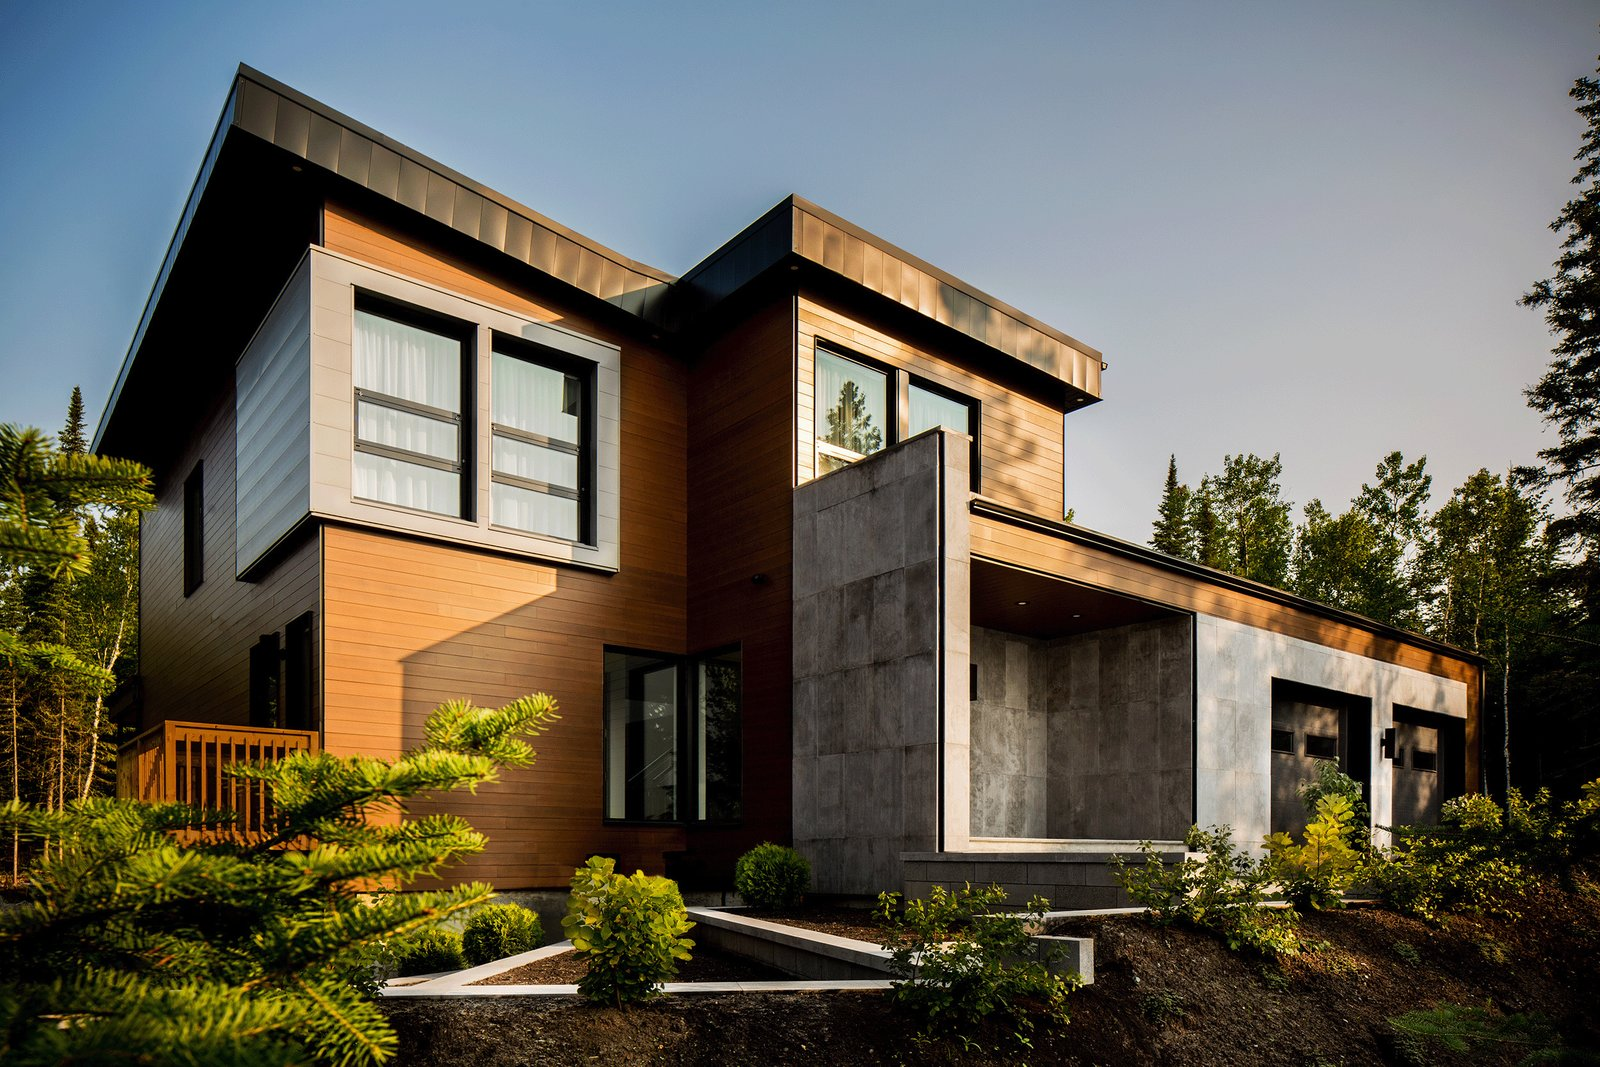 BONE Structure Residence by BONE Structure